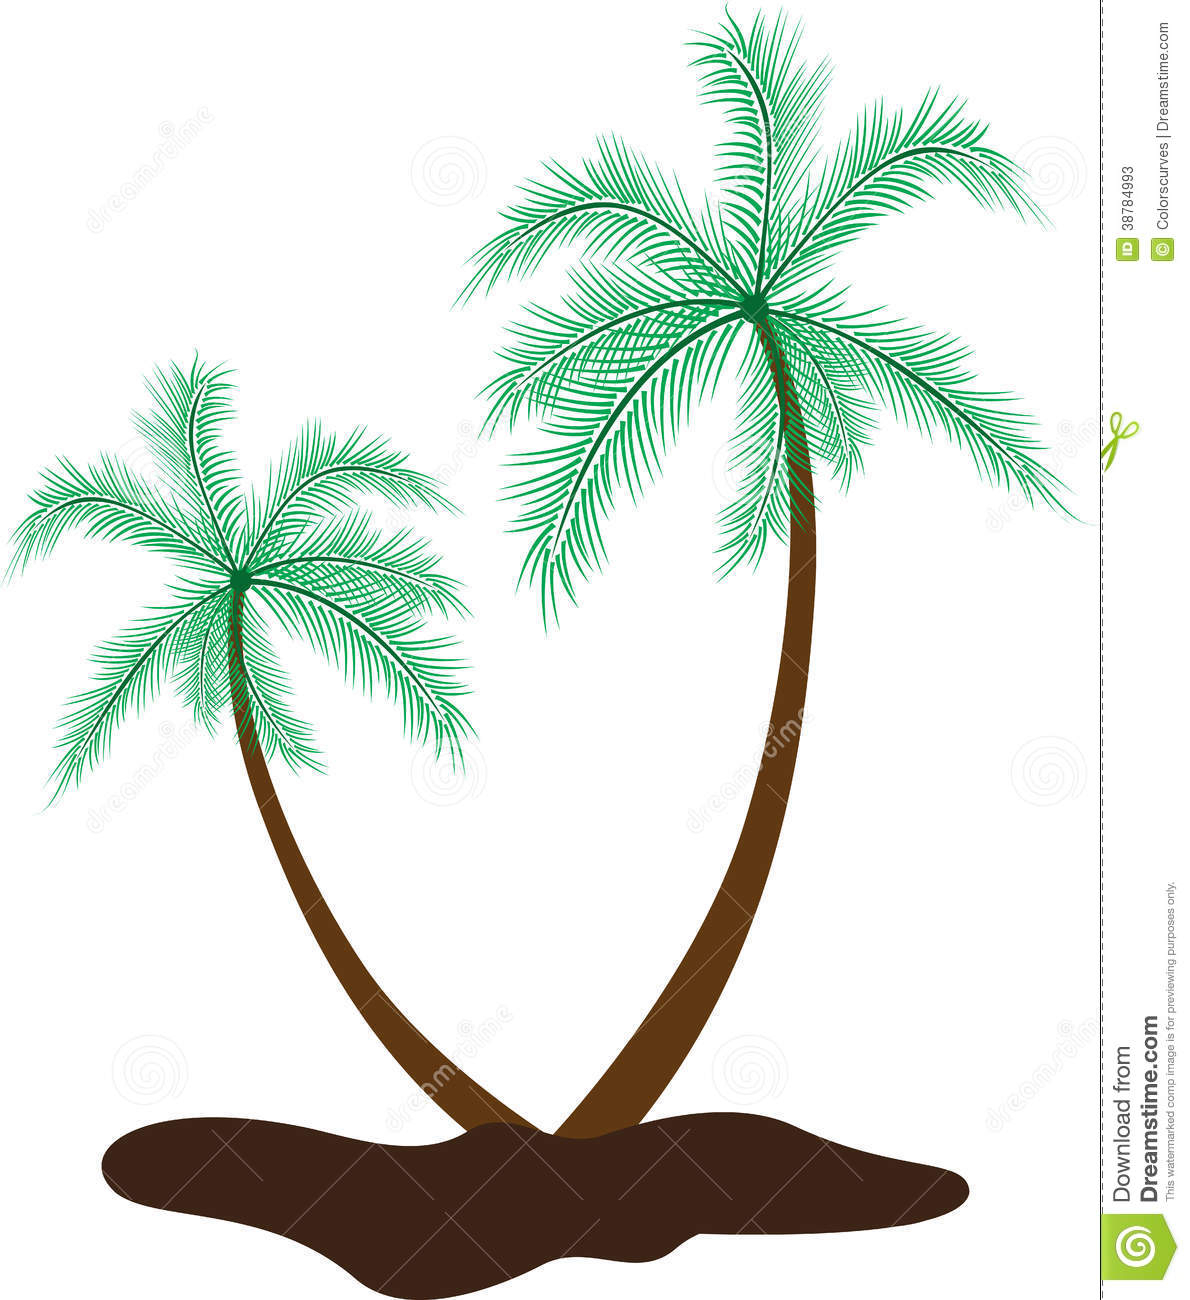 1190x1300 Coconut Tree Drawing Coconut Tree Stock Vector. Image Of Island